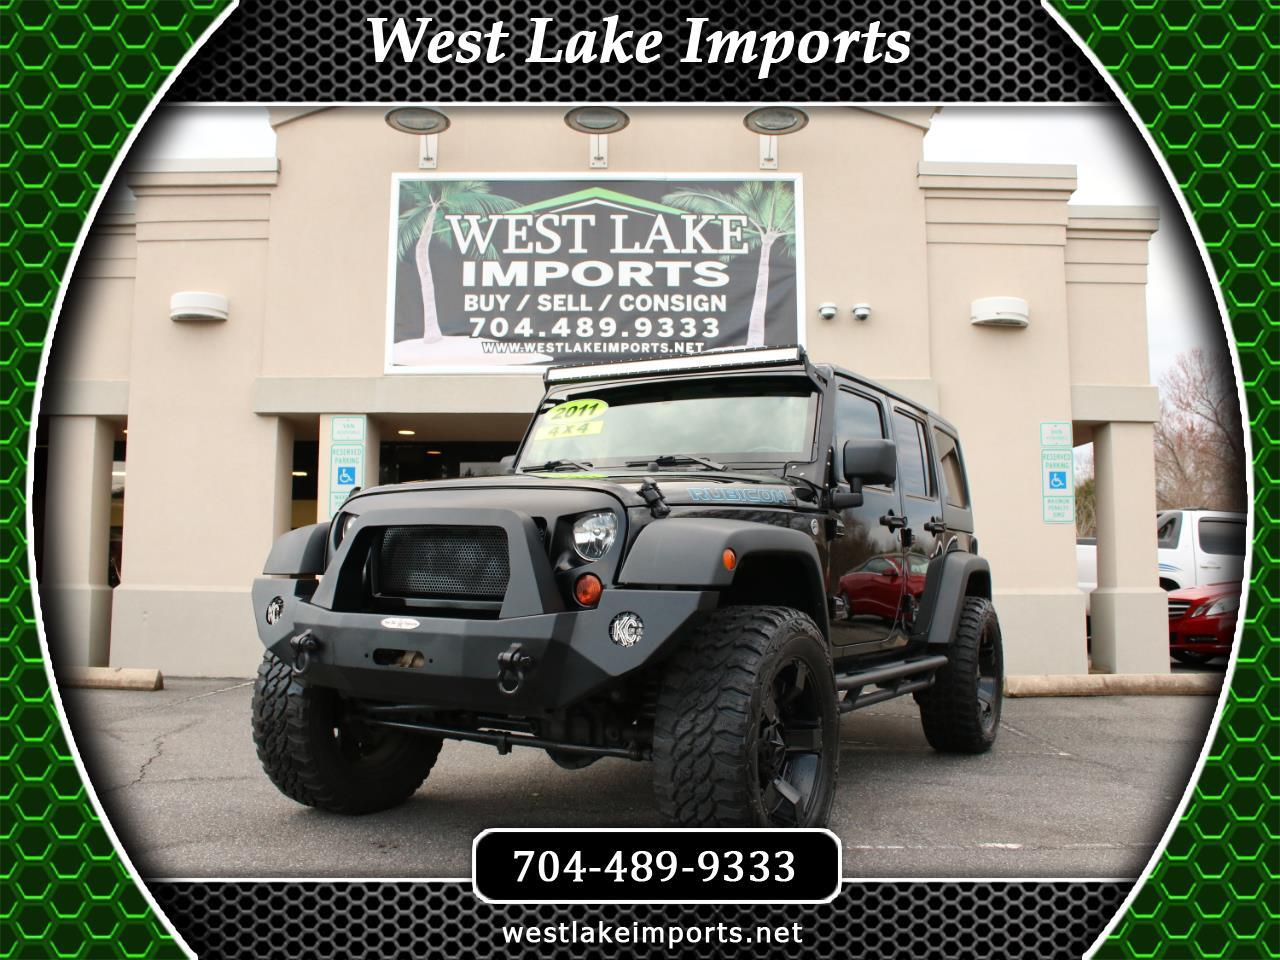 2011 Jeep Wrangler Unlimited Rubicon 4x4